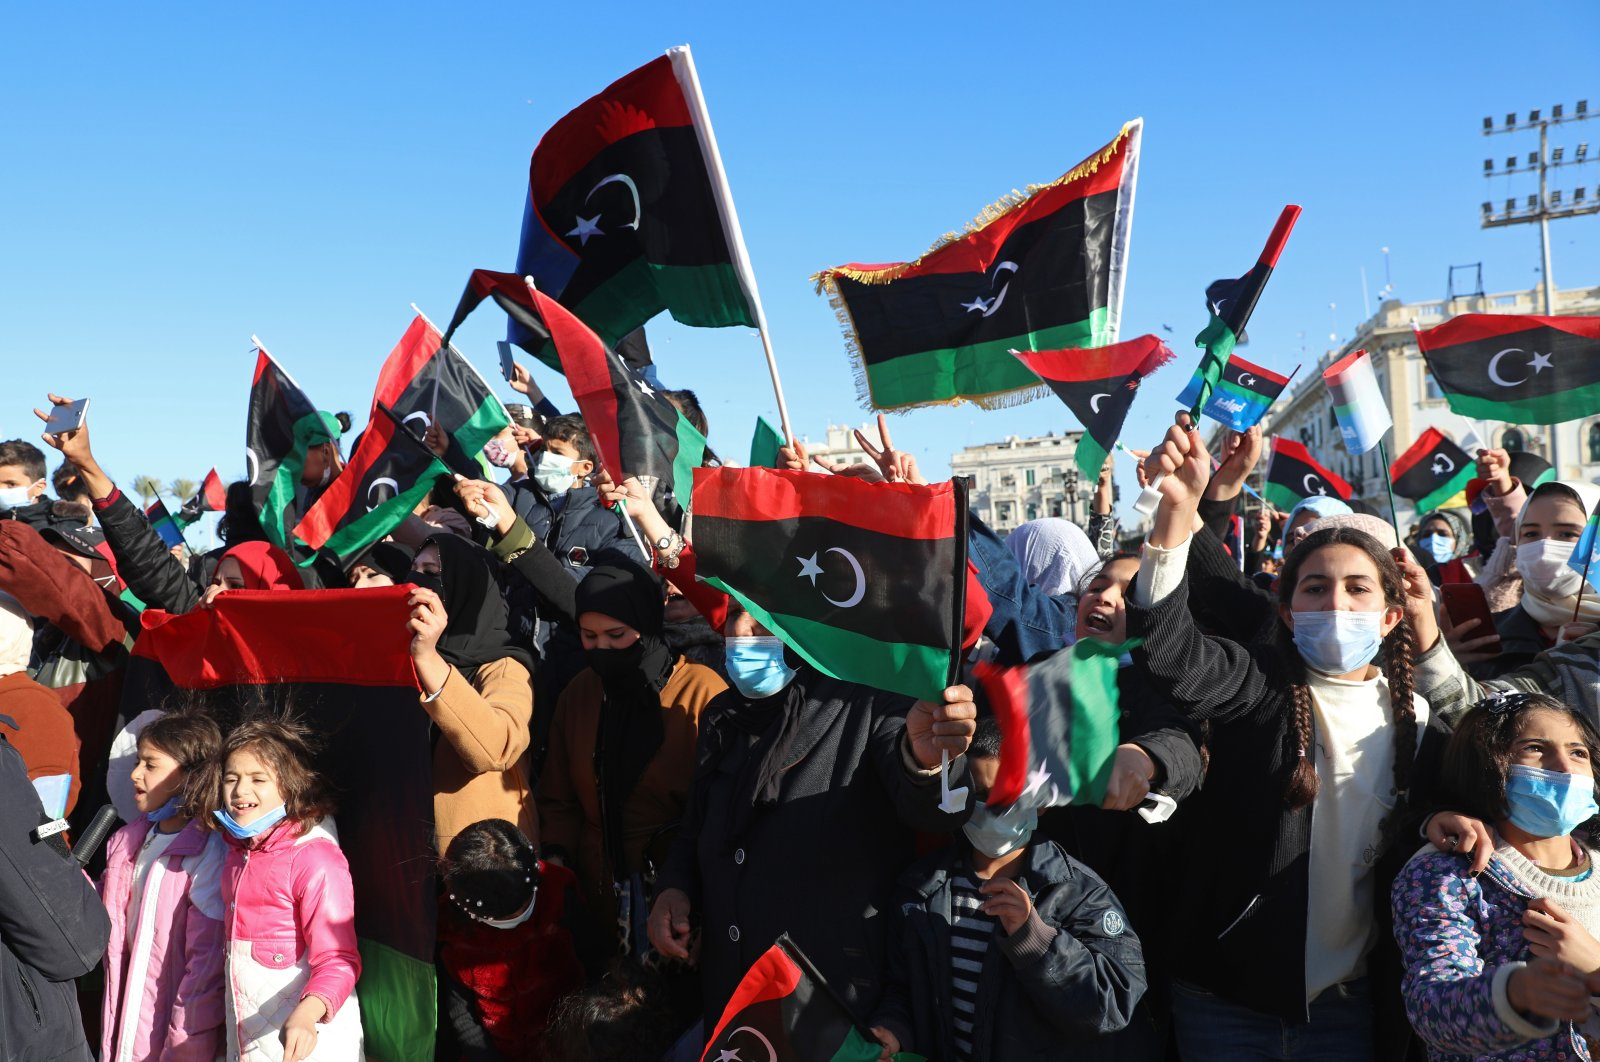 Libyans mark the 10th anniversary of their 2011 uprising that led to the overthrow and killing of longtime ruler Moammar Gadhafi, in Martyrs Square, Tripoli, Libya, Feb. 17, 2021. (AP File Photo)